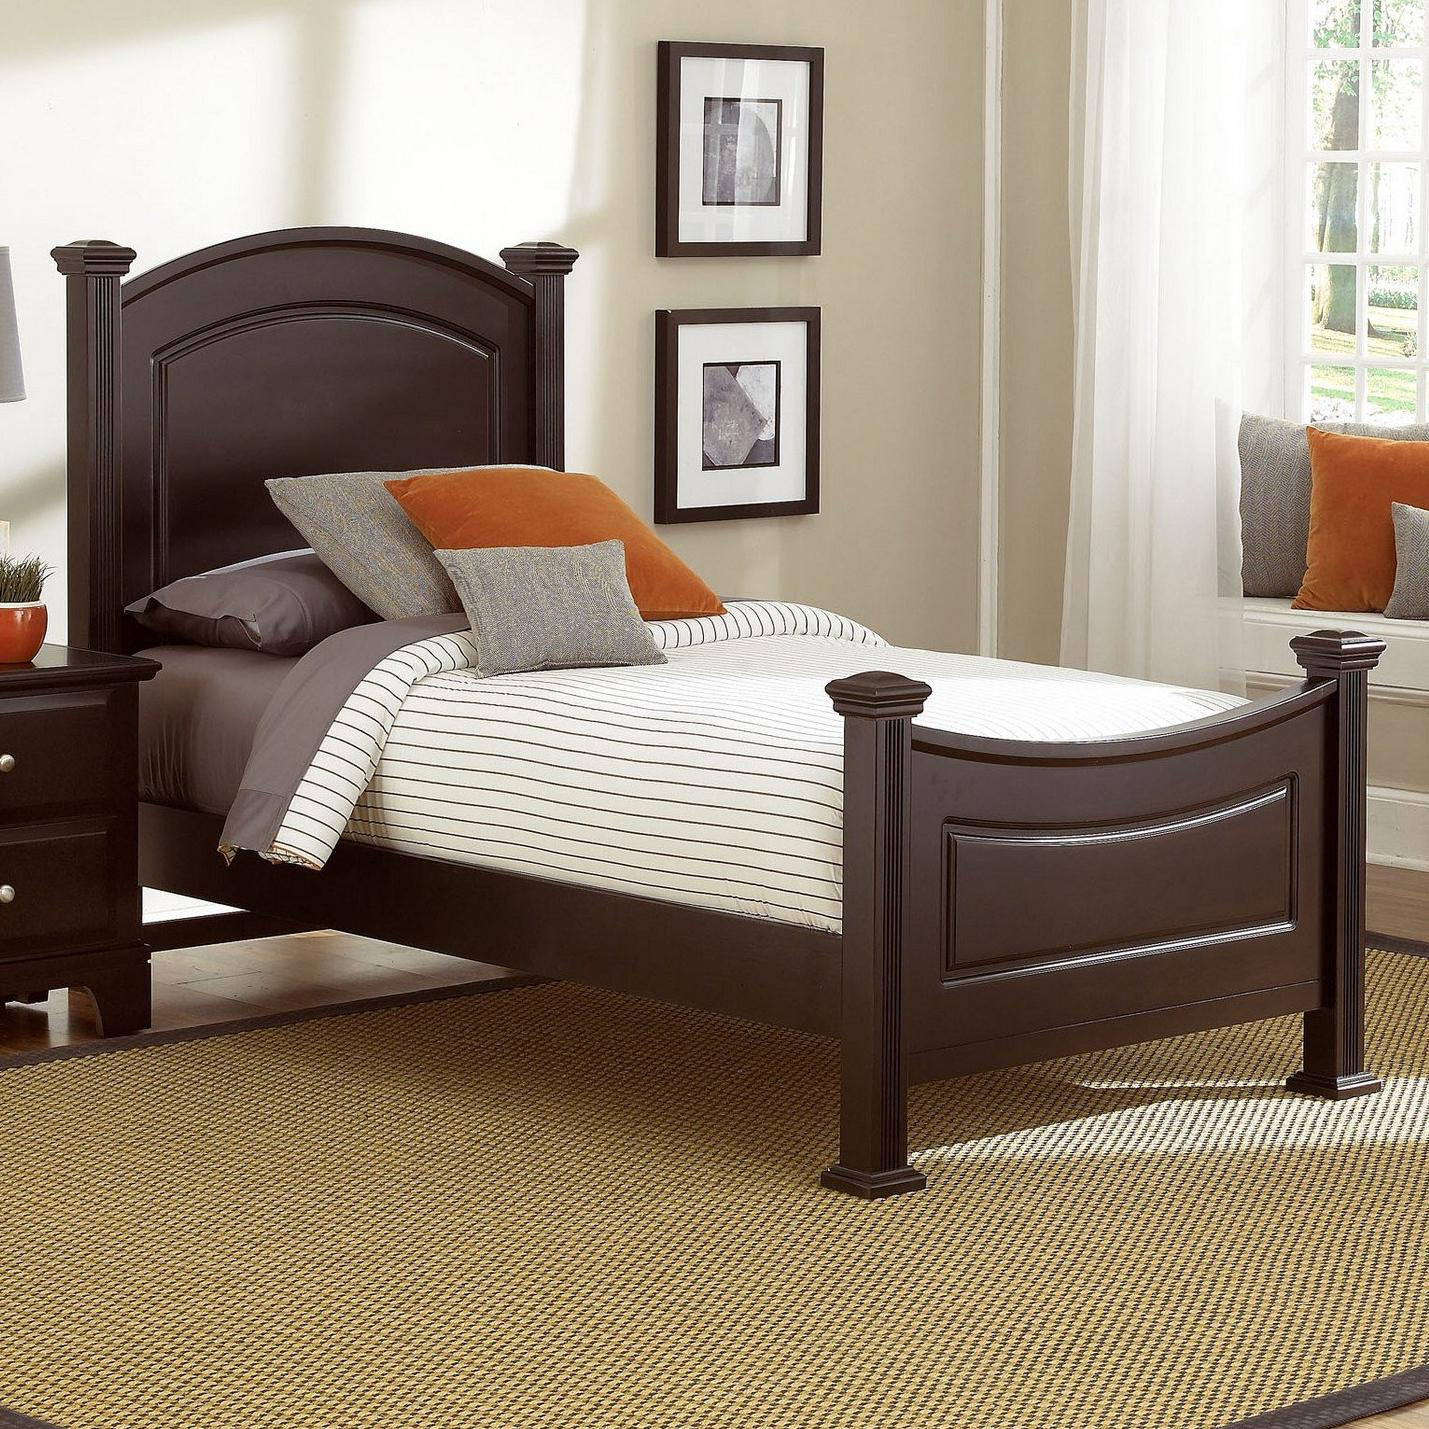 Vaughan Bassett Hamilton Twin Panel Bed - Item Number: BB4-338+833+900